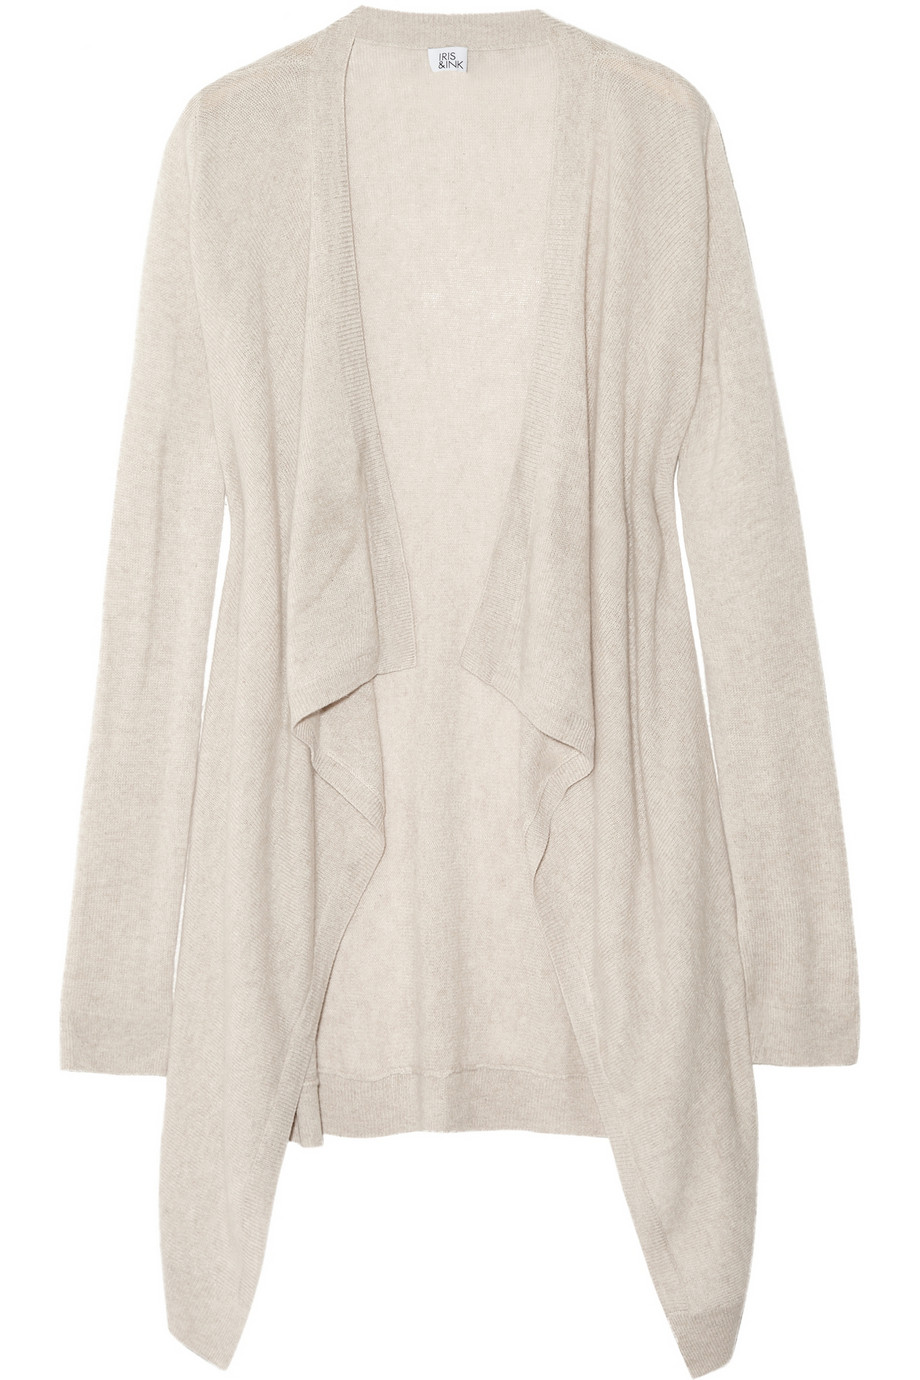 Iris & ink Draped Cashmere Cardigan in Natural | Lyst